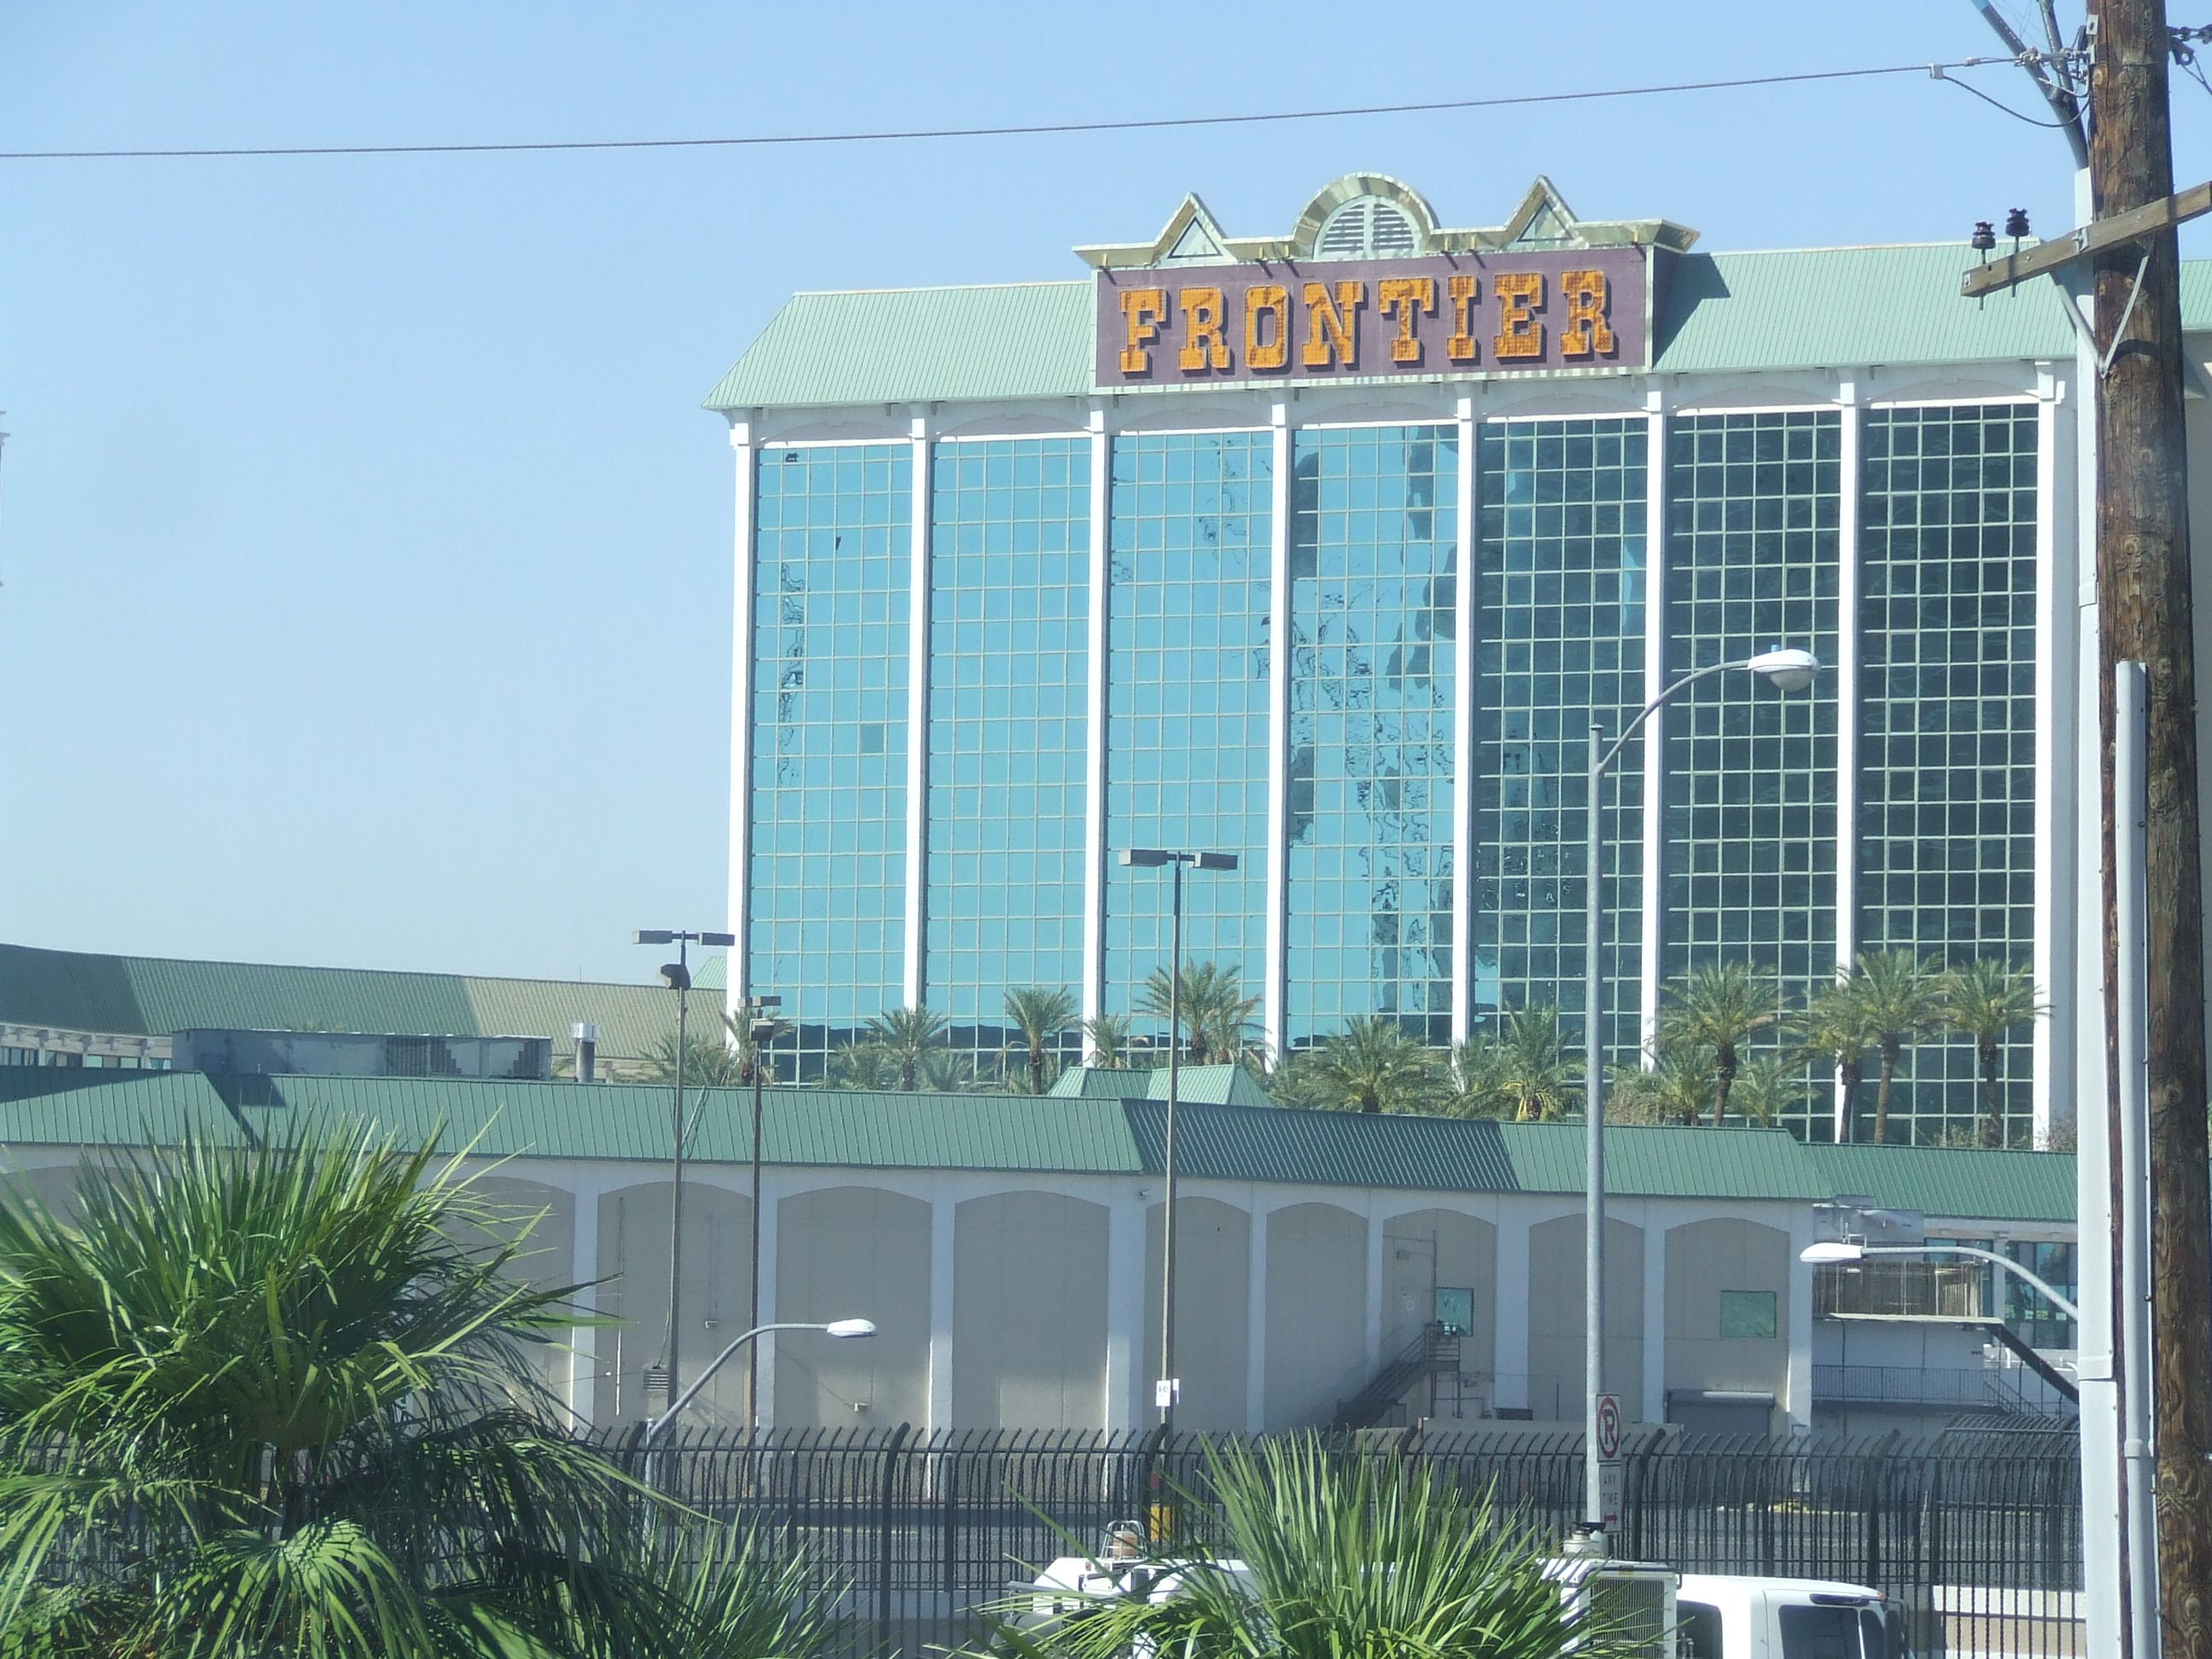 The New Frontier resort was demolished not long after I took this and other photos. Elvis performed there in 1956.